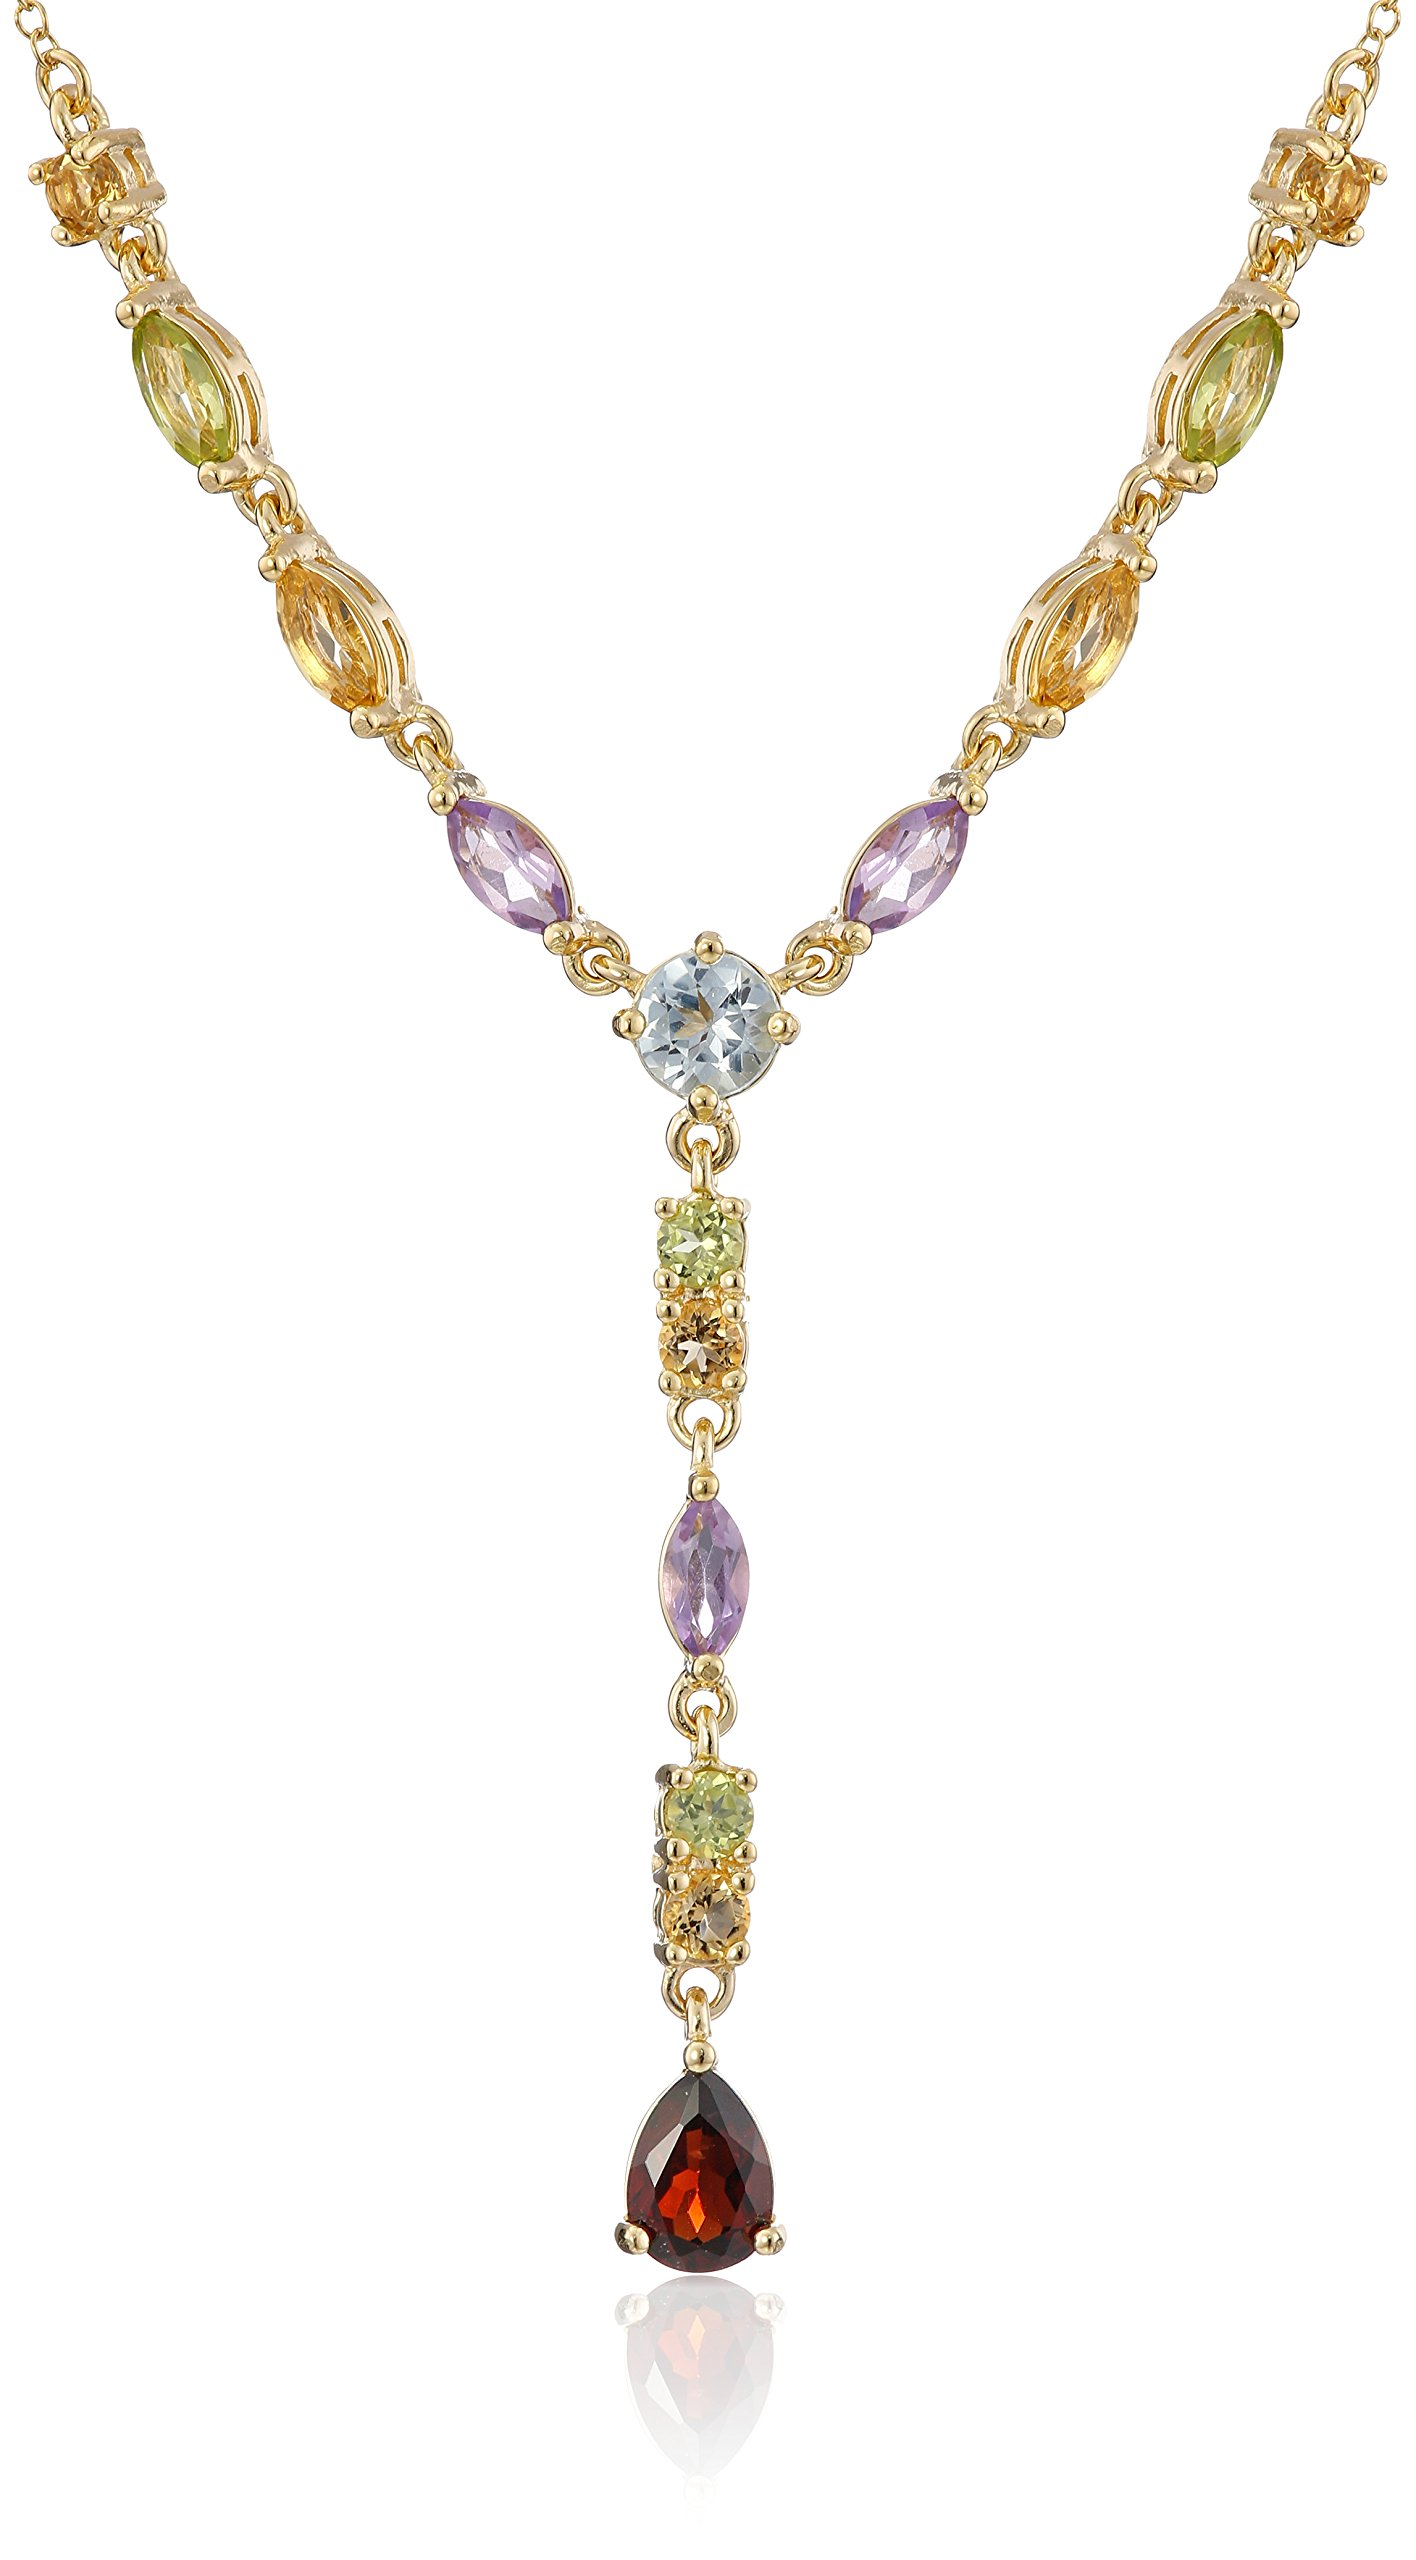 18k Yellow Gold Plated Sterling Silver Genuine Multi Gemstone Y-Necklace, 17''